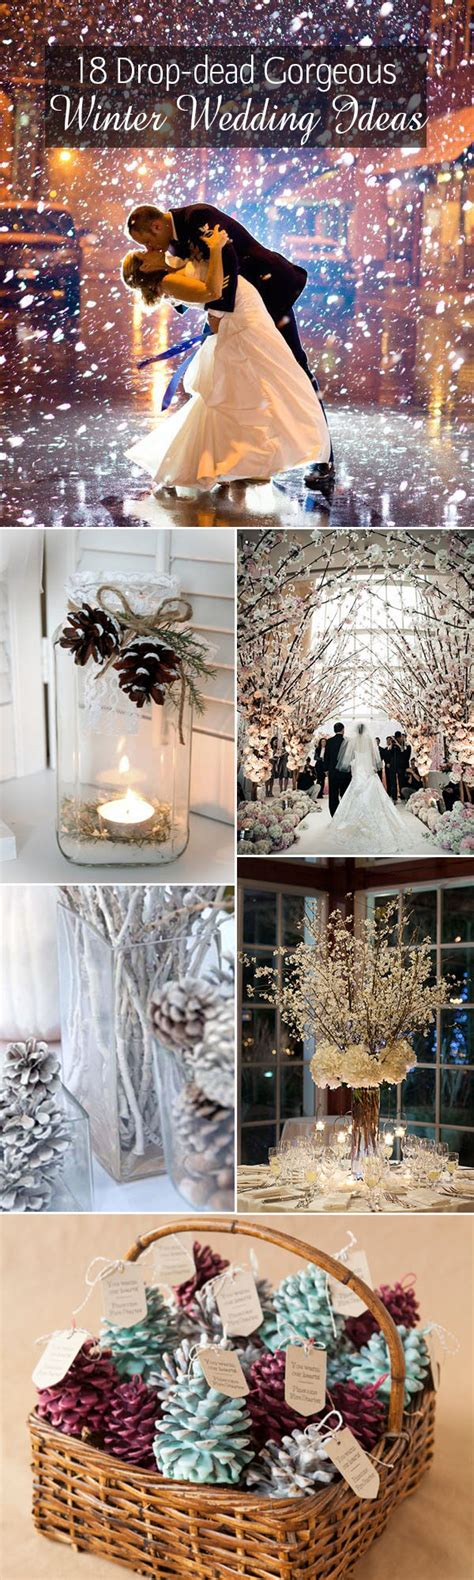 Winter Wedding Ideas by 18 Drop Dead Gorgeous Winter Wedding Ideas For 2015